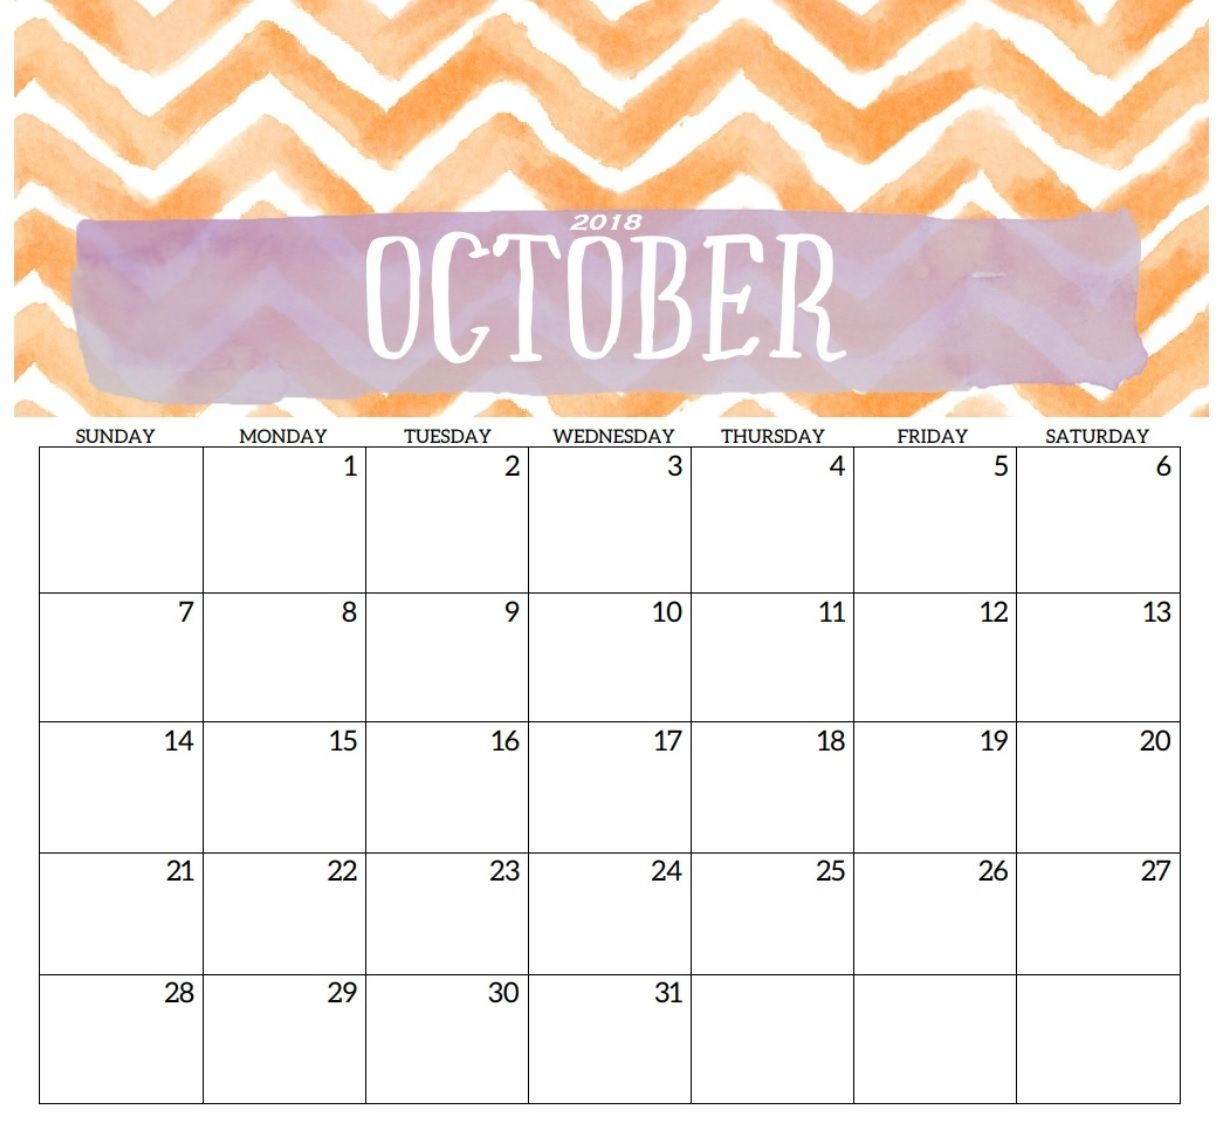 printable october 2018 calendar calendar 2018 pinterest Printable October 2018 Calendar erdferdf